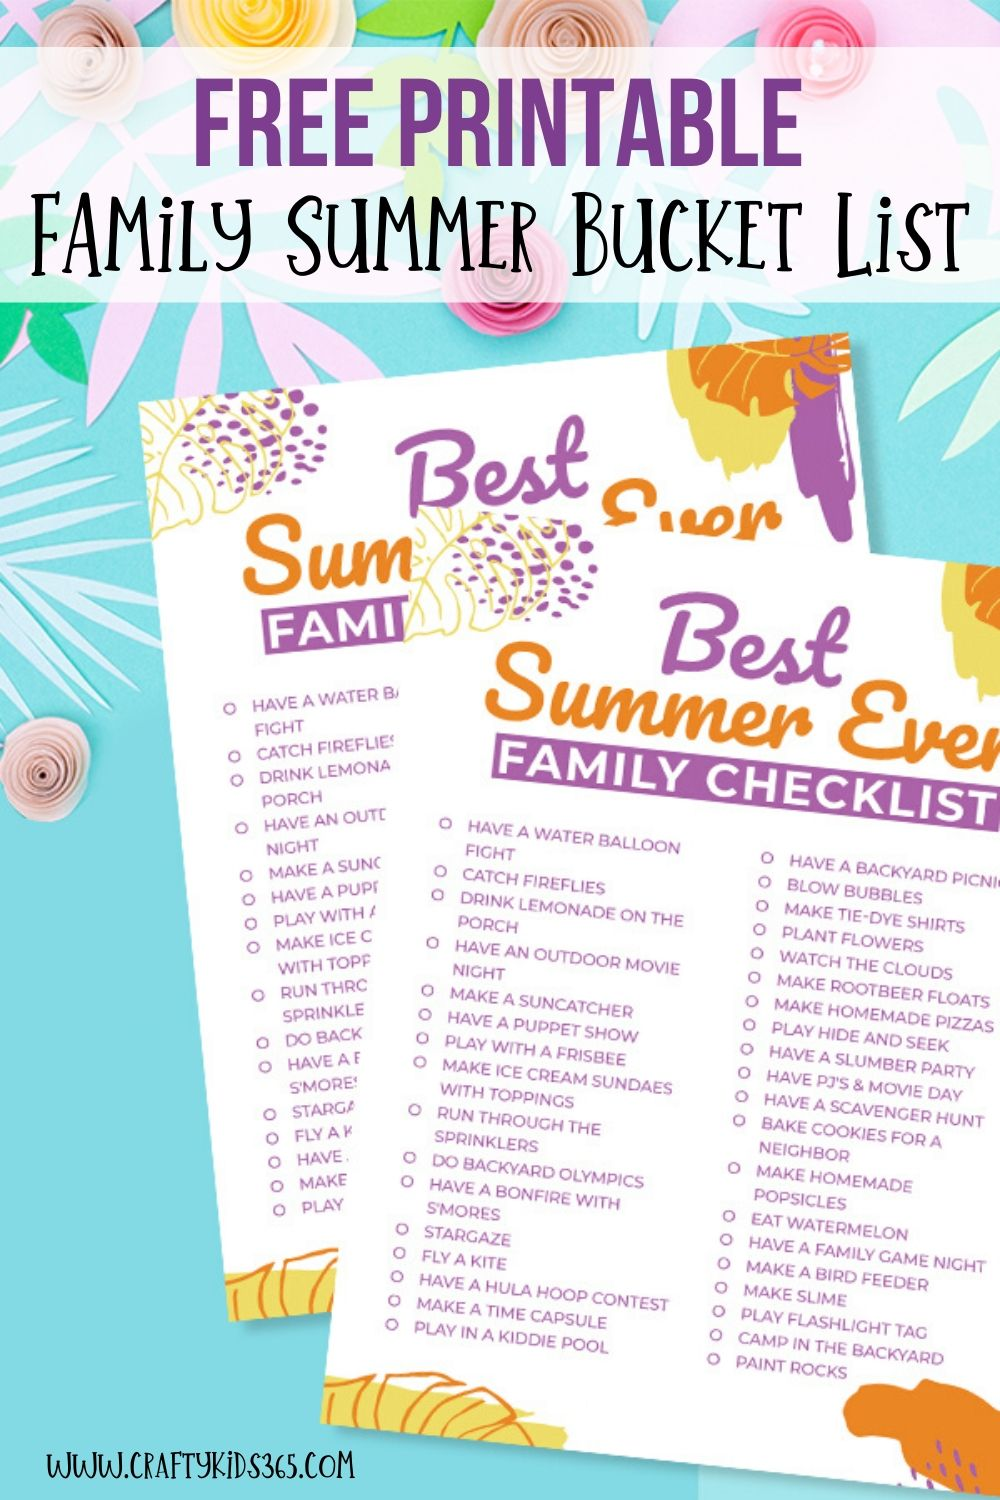 Ready to kick off the summer? Download this free Fun Printable Family Summer Bucket List. These Summer family activities are great for the entire family. Keep kids busy! Fun Printable Family Summer Bucket List. Includes nature ideas, arts and crafts, excursions and more! Free Printable included.